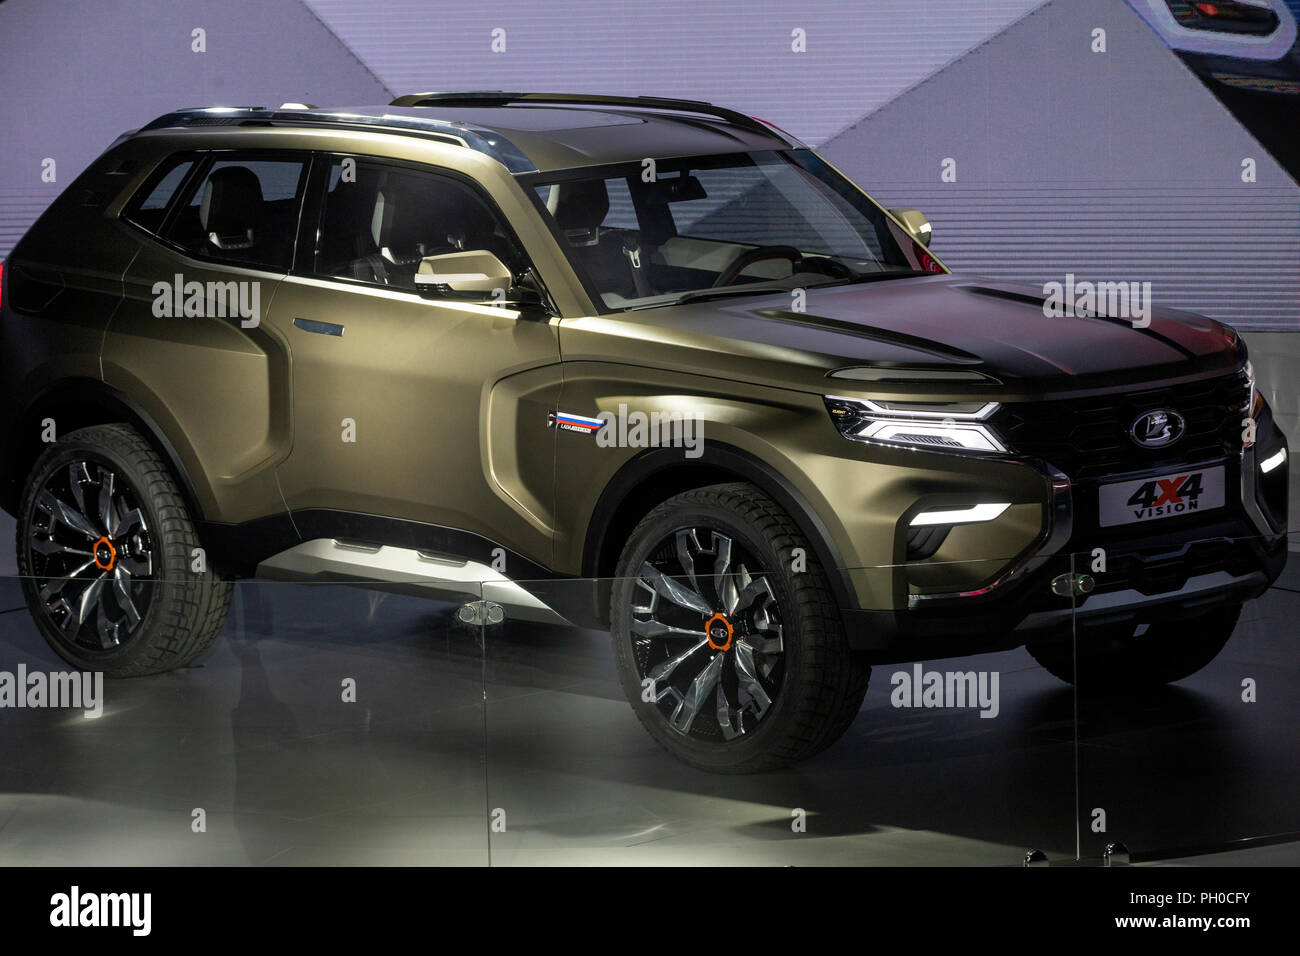 moscow russia 29th august 2018 a concept lada 4x4 vision offroader unveiled at the 2018. Black Bedroom Furniture Sets. Home Design Ideas